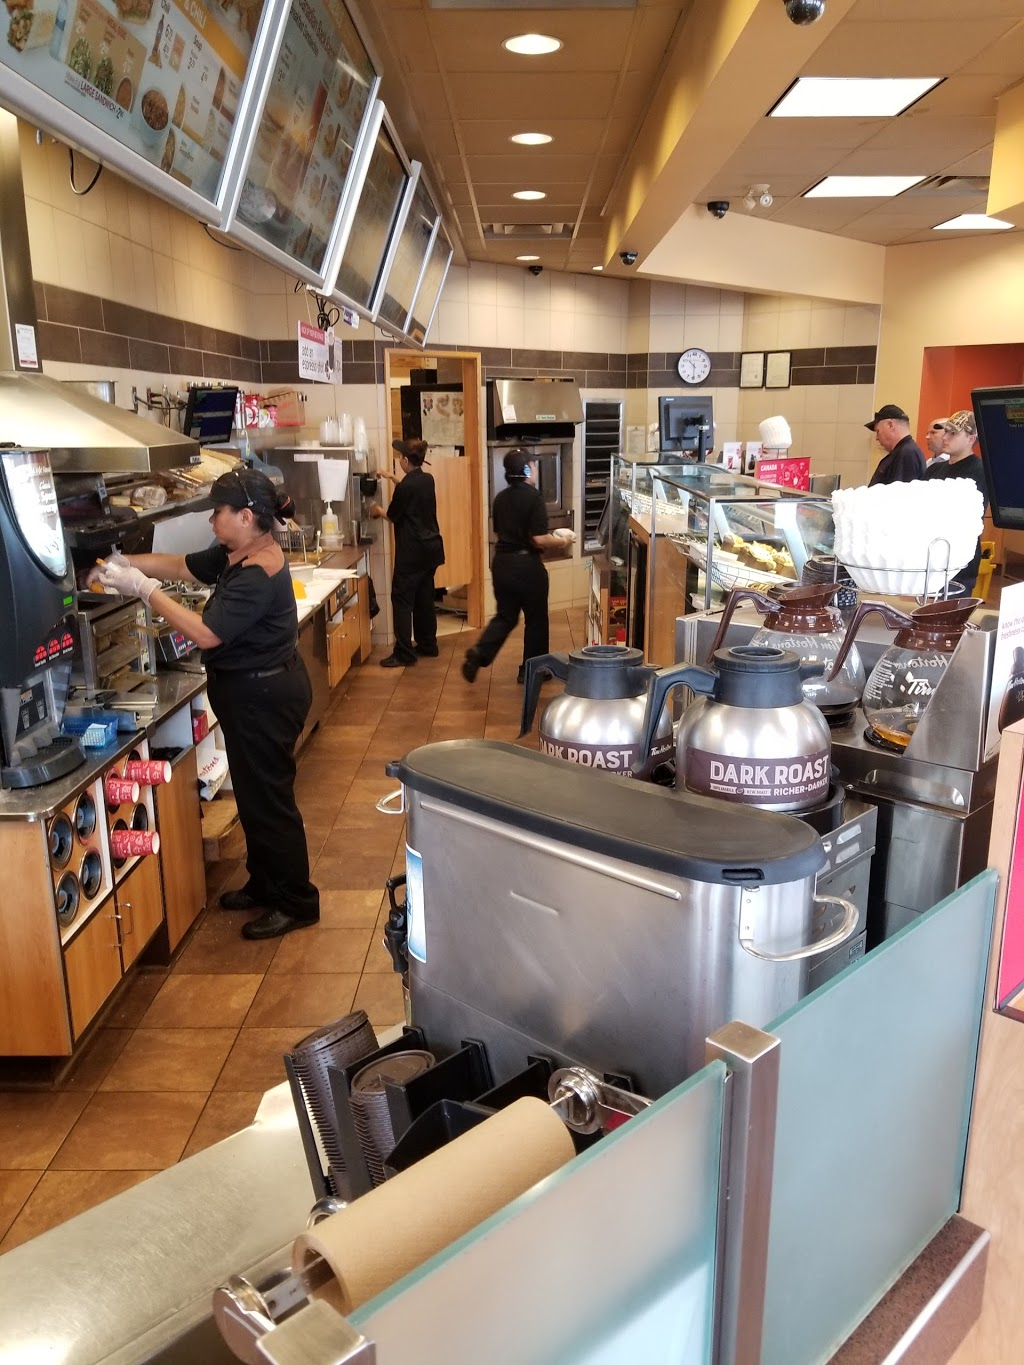 Tim Hortons | cafe | 1146 Portage Ave, Winnipeg, MB R3G 0T1, Canada | 2047755203 OR +1 204-775-5203